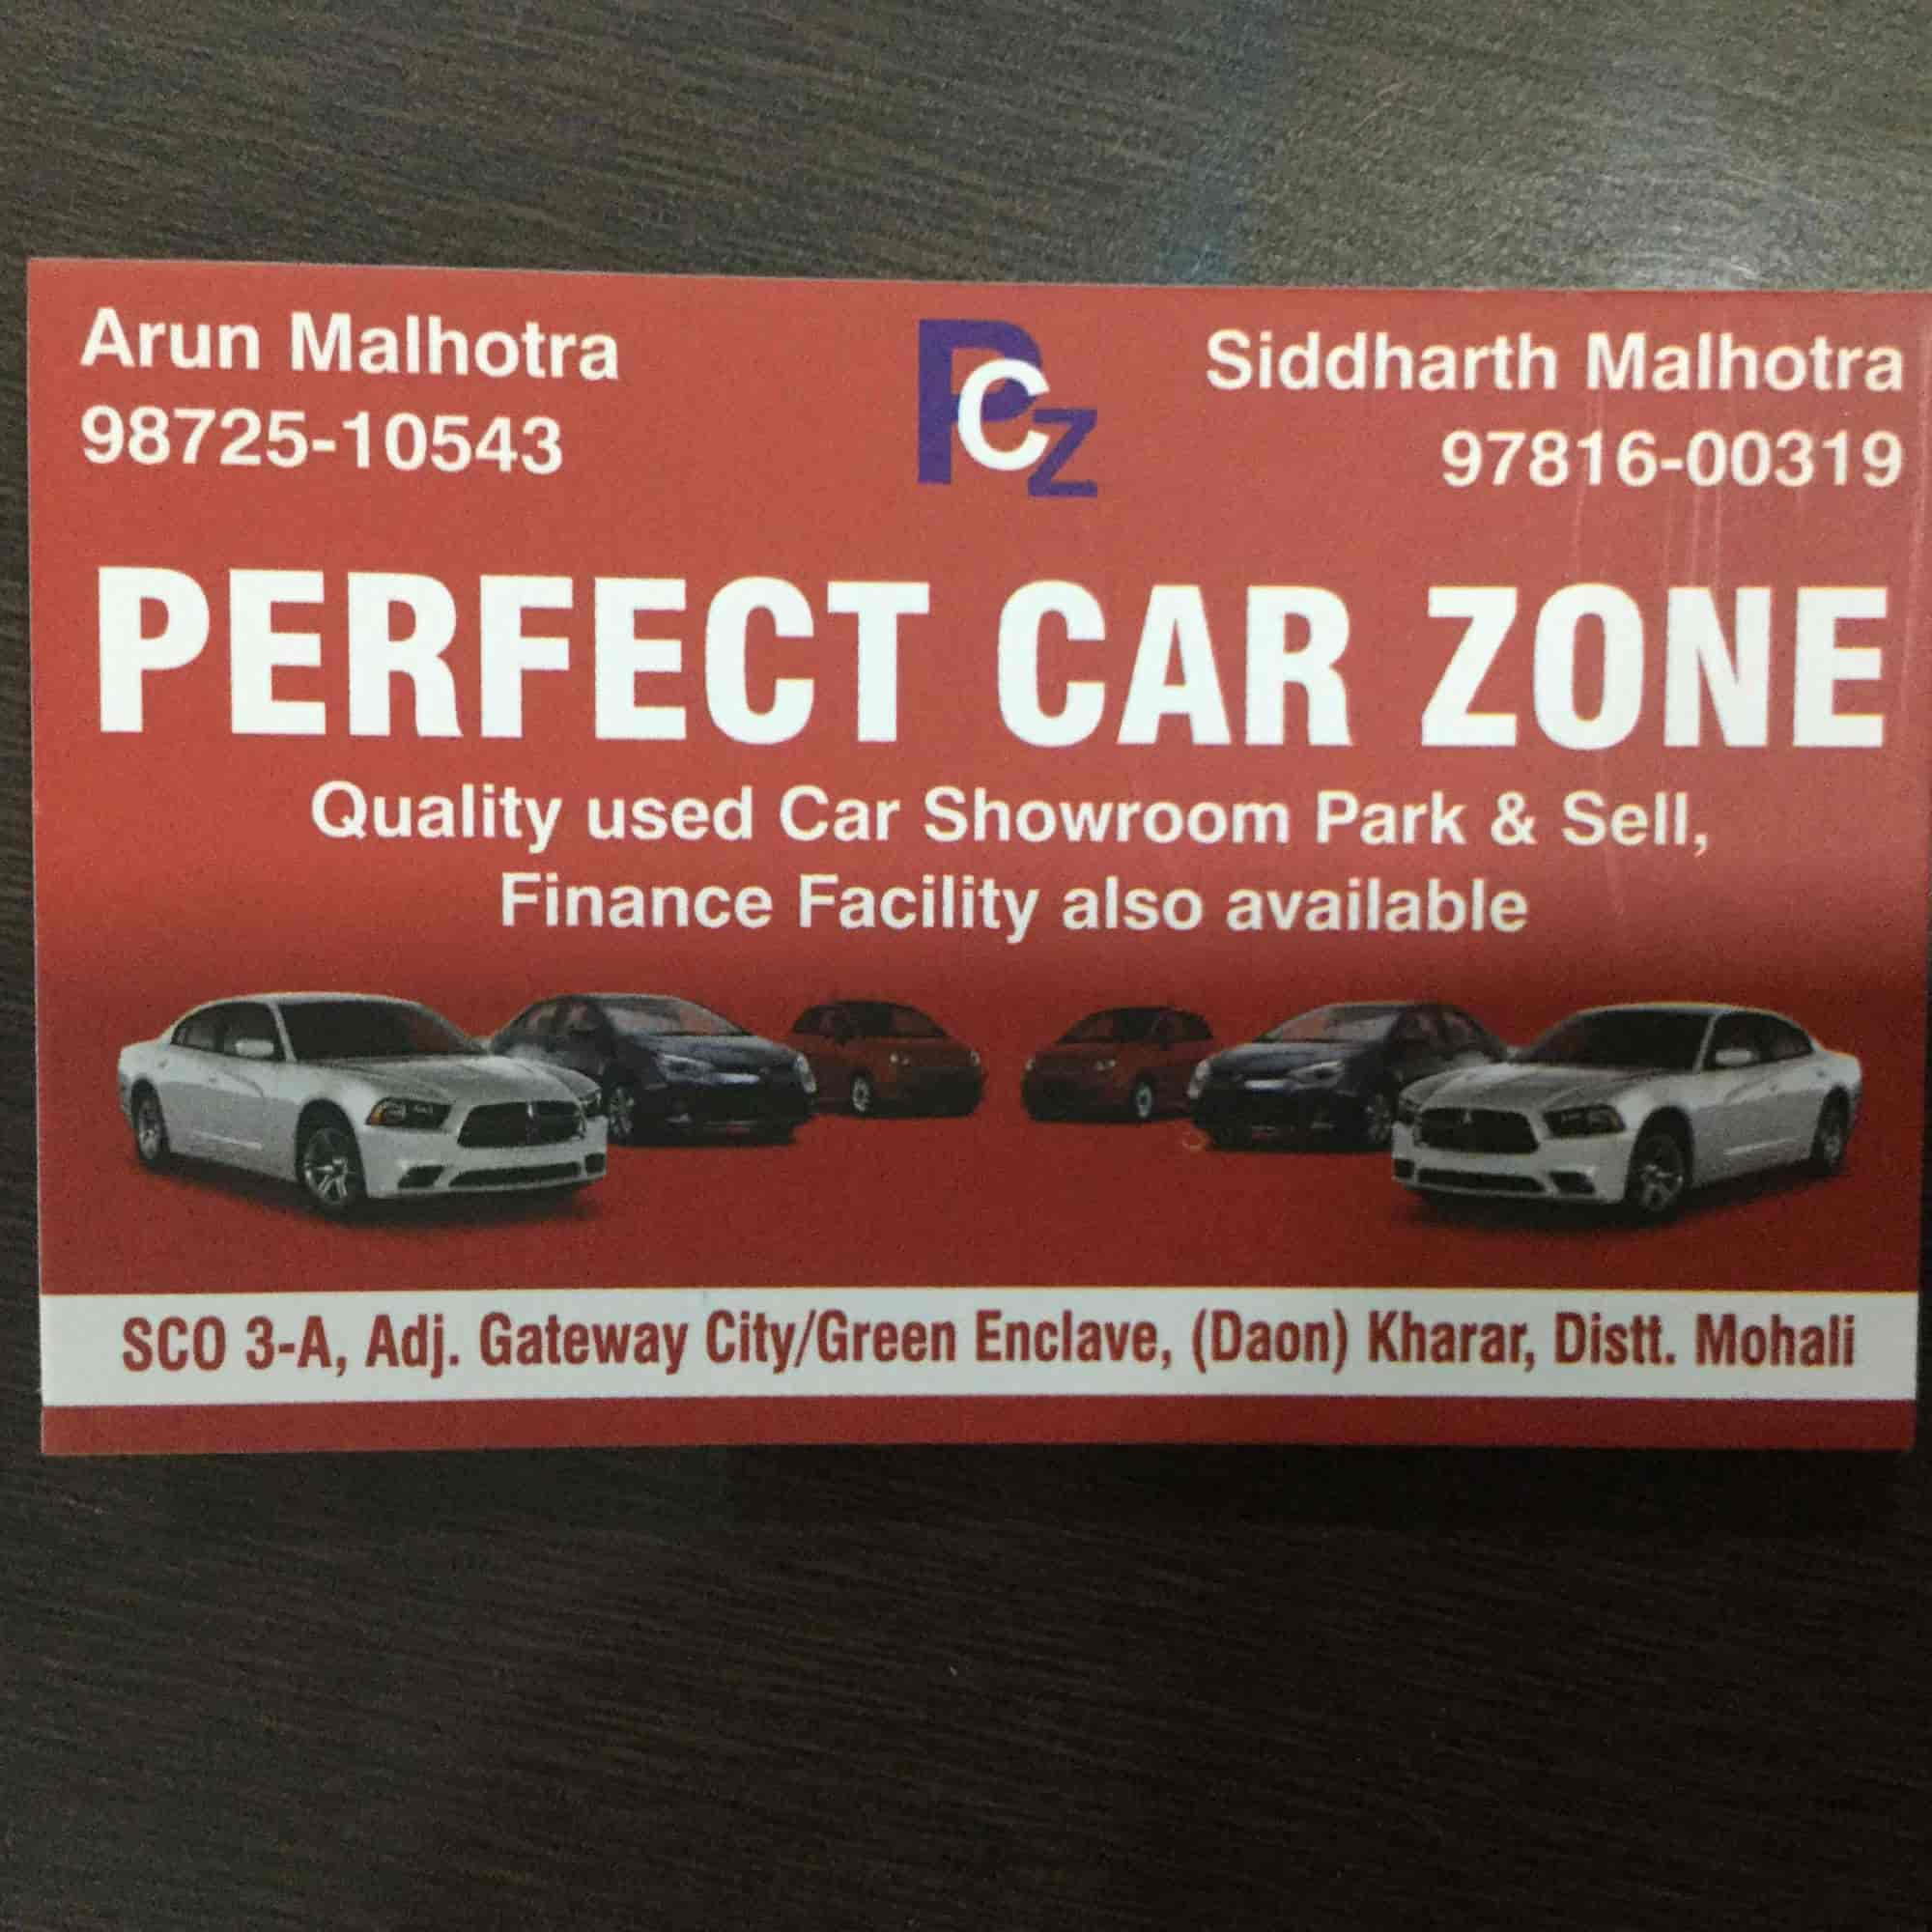 Perfect Car Zone Photos, Kharar, Chandigarh- Pictures & Images ...